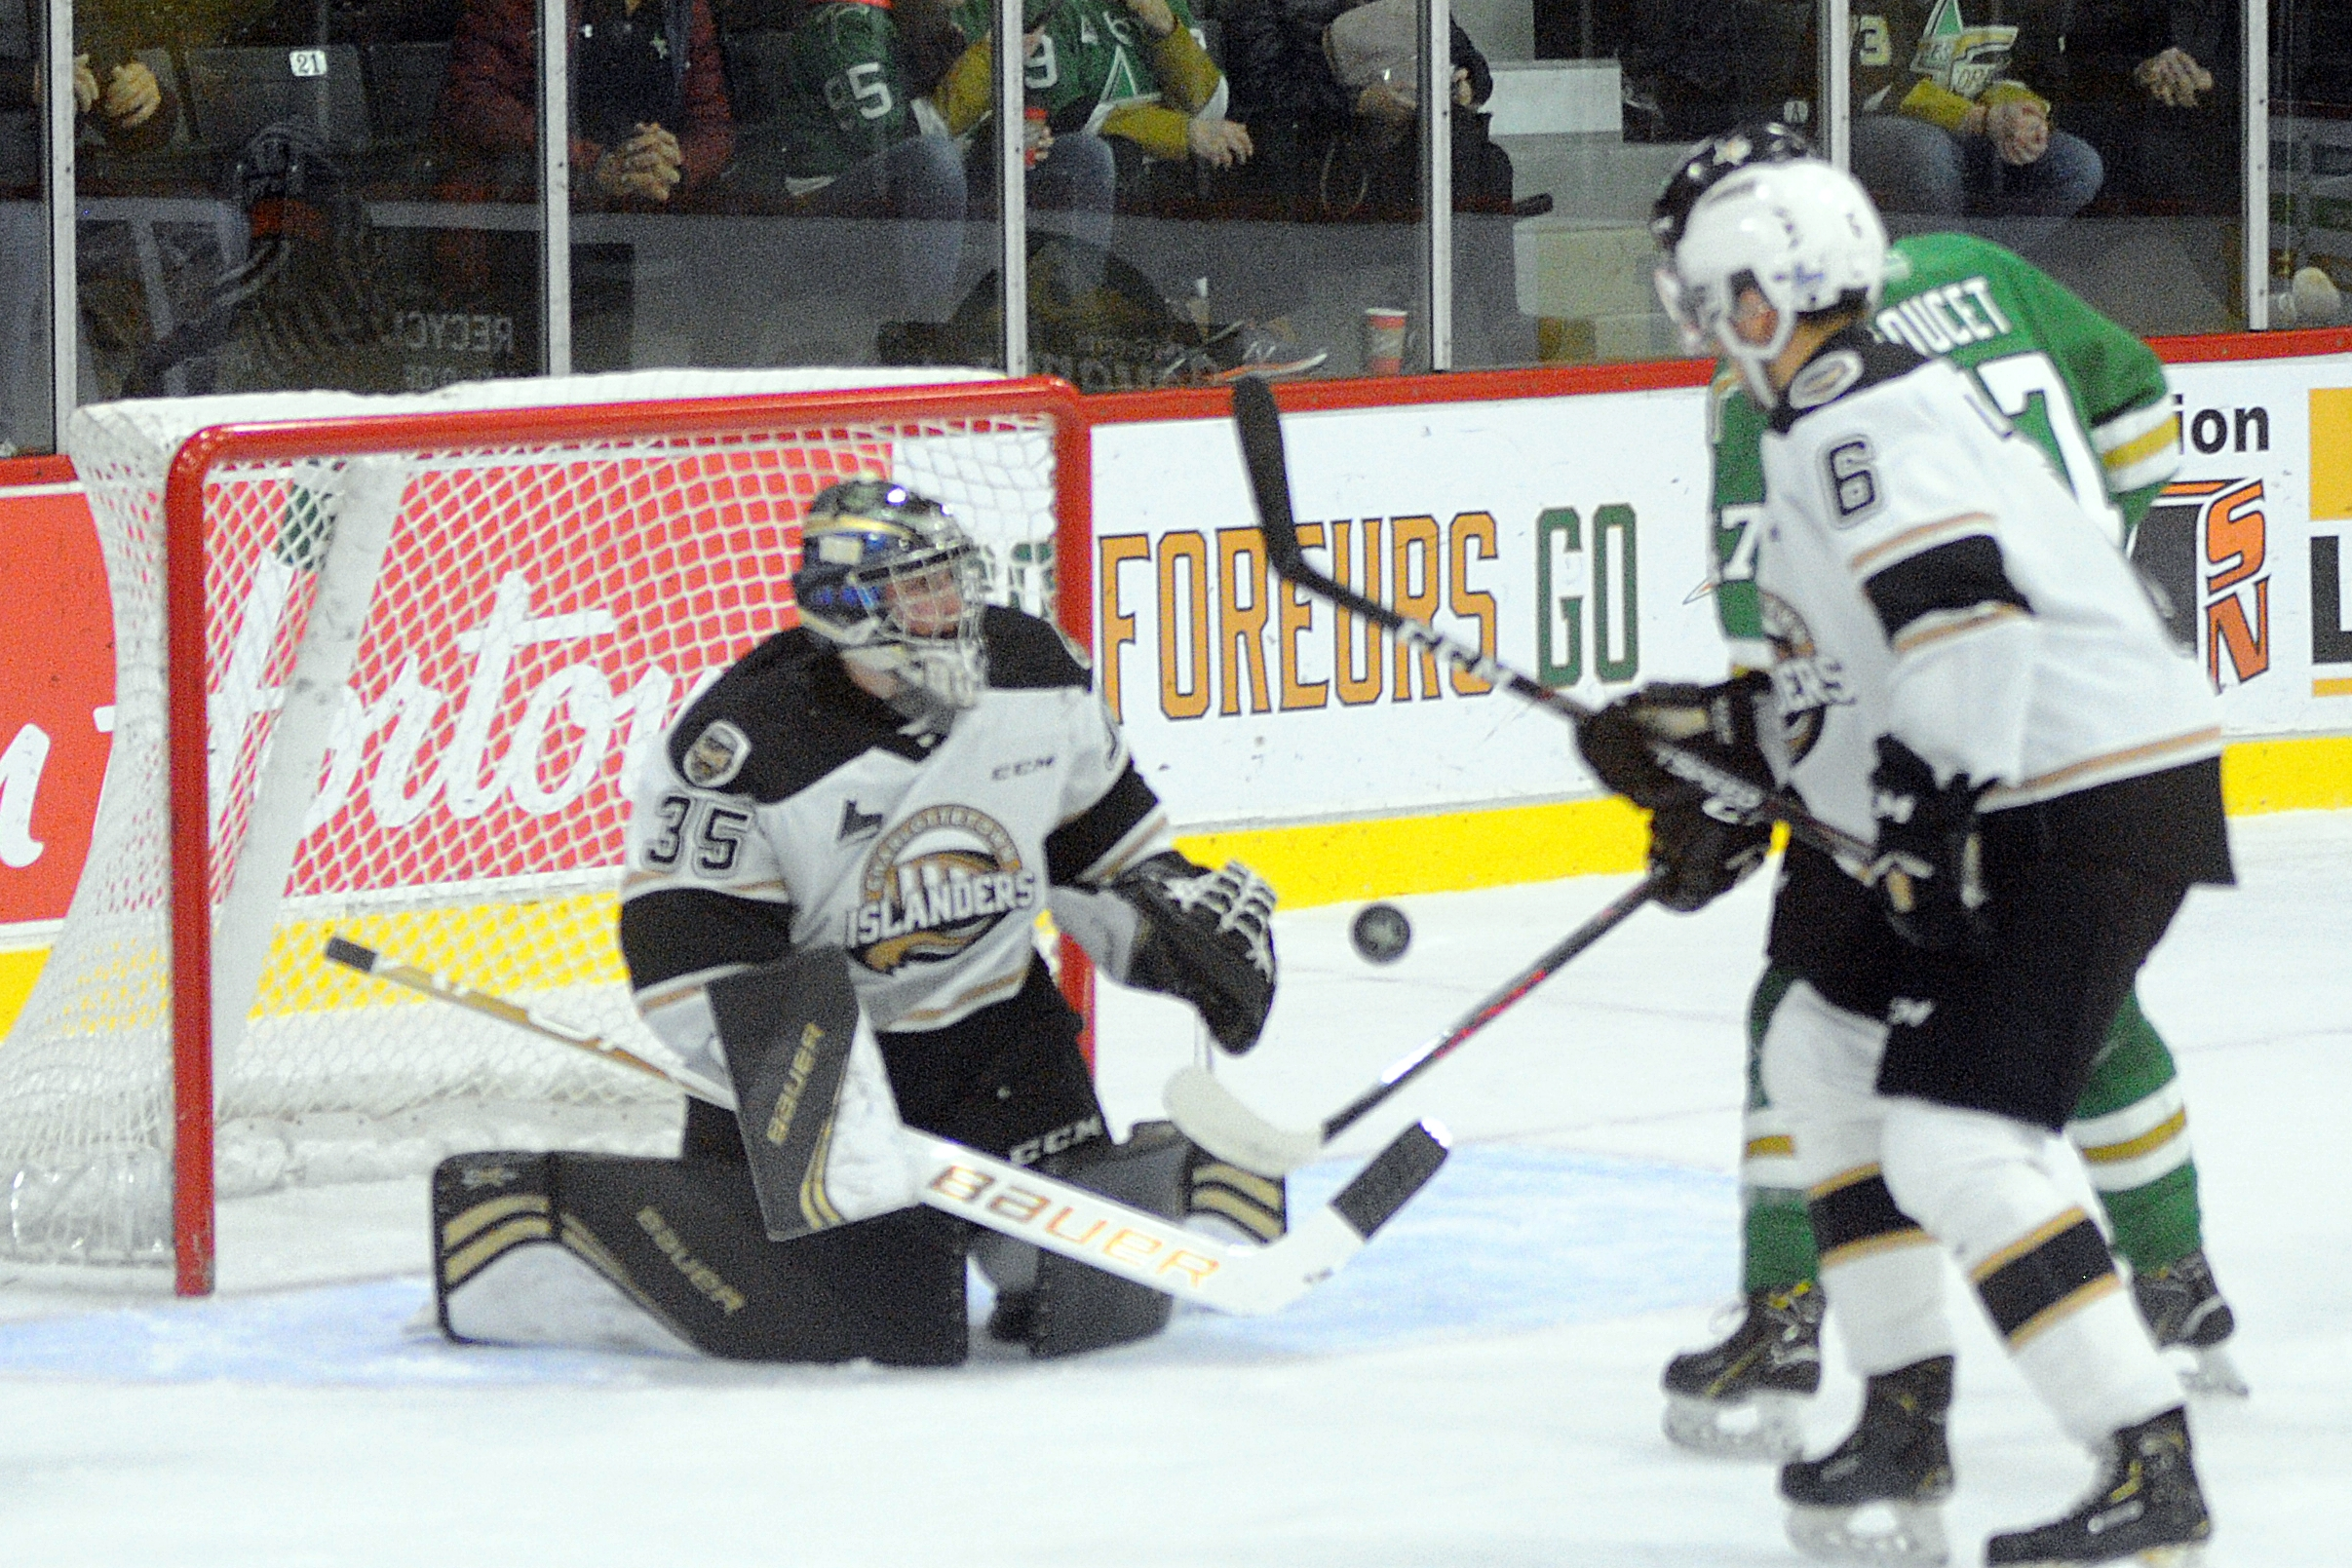 Islanders Charlottetown - Foreurs Val-d'Or